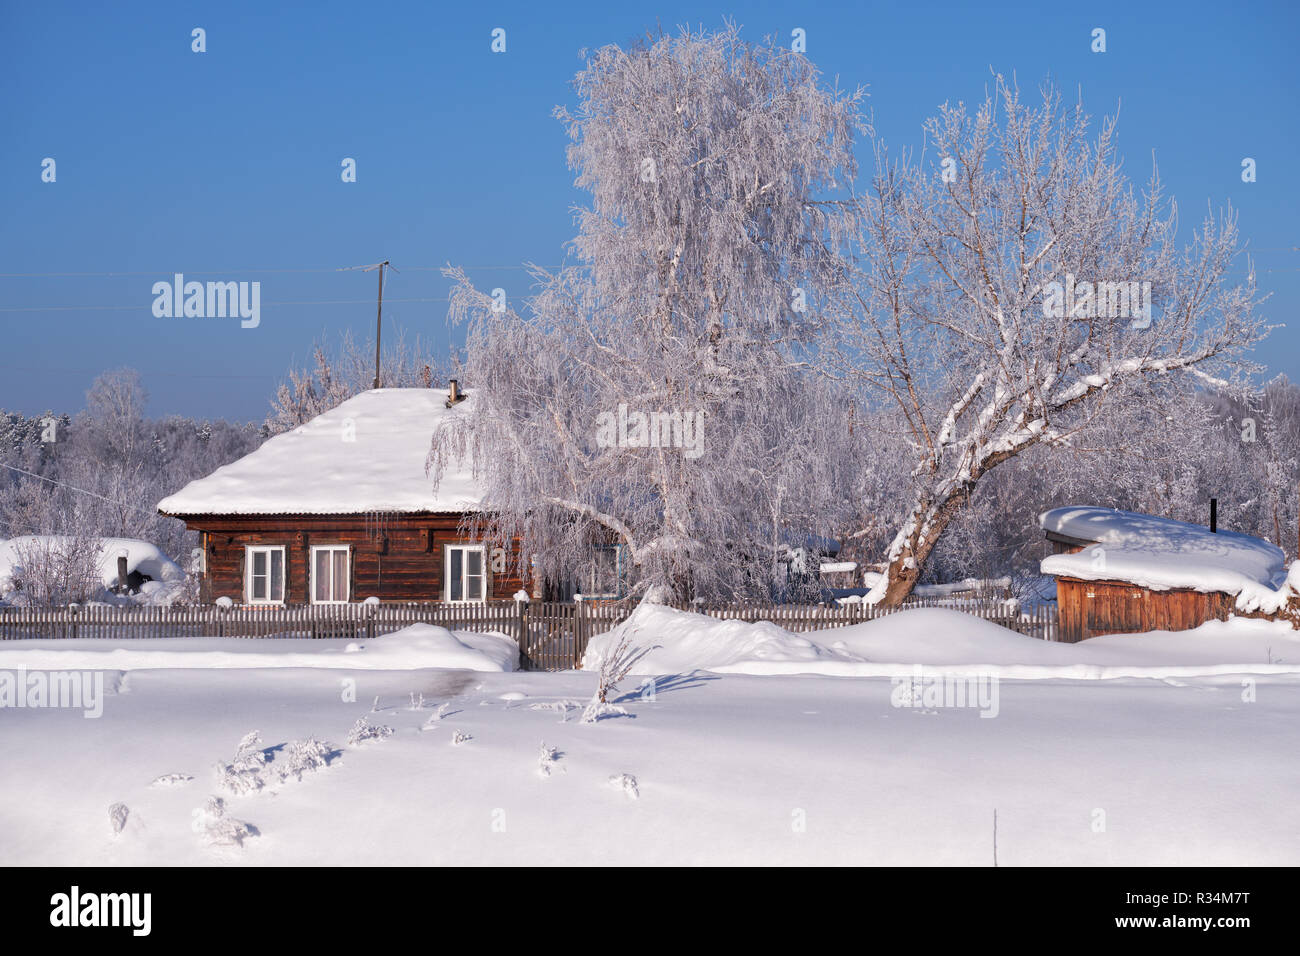 Traditional russian country house izba in village Talitsa under winter snow. Altai, Siberia, Russia - Stock Image